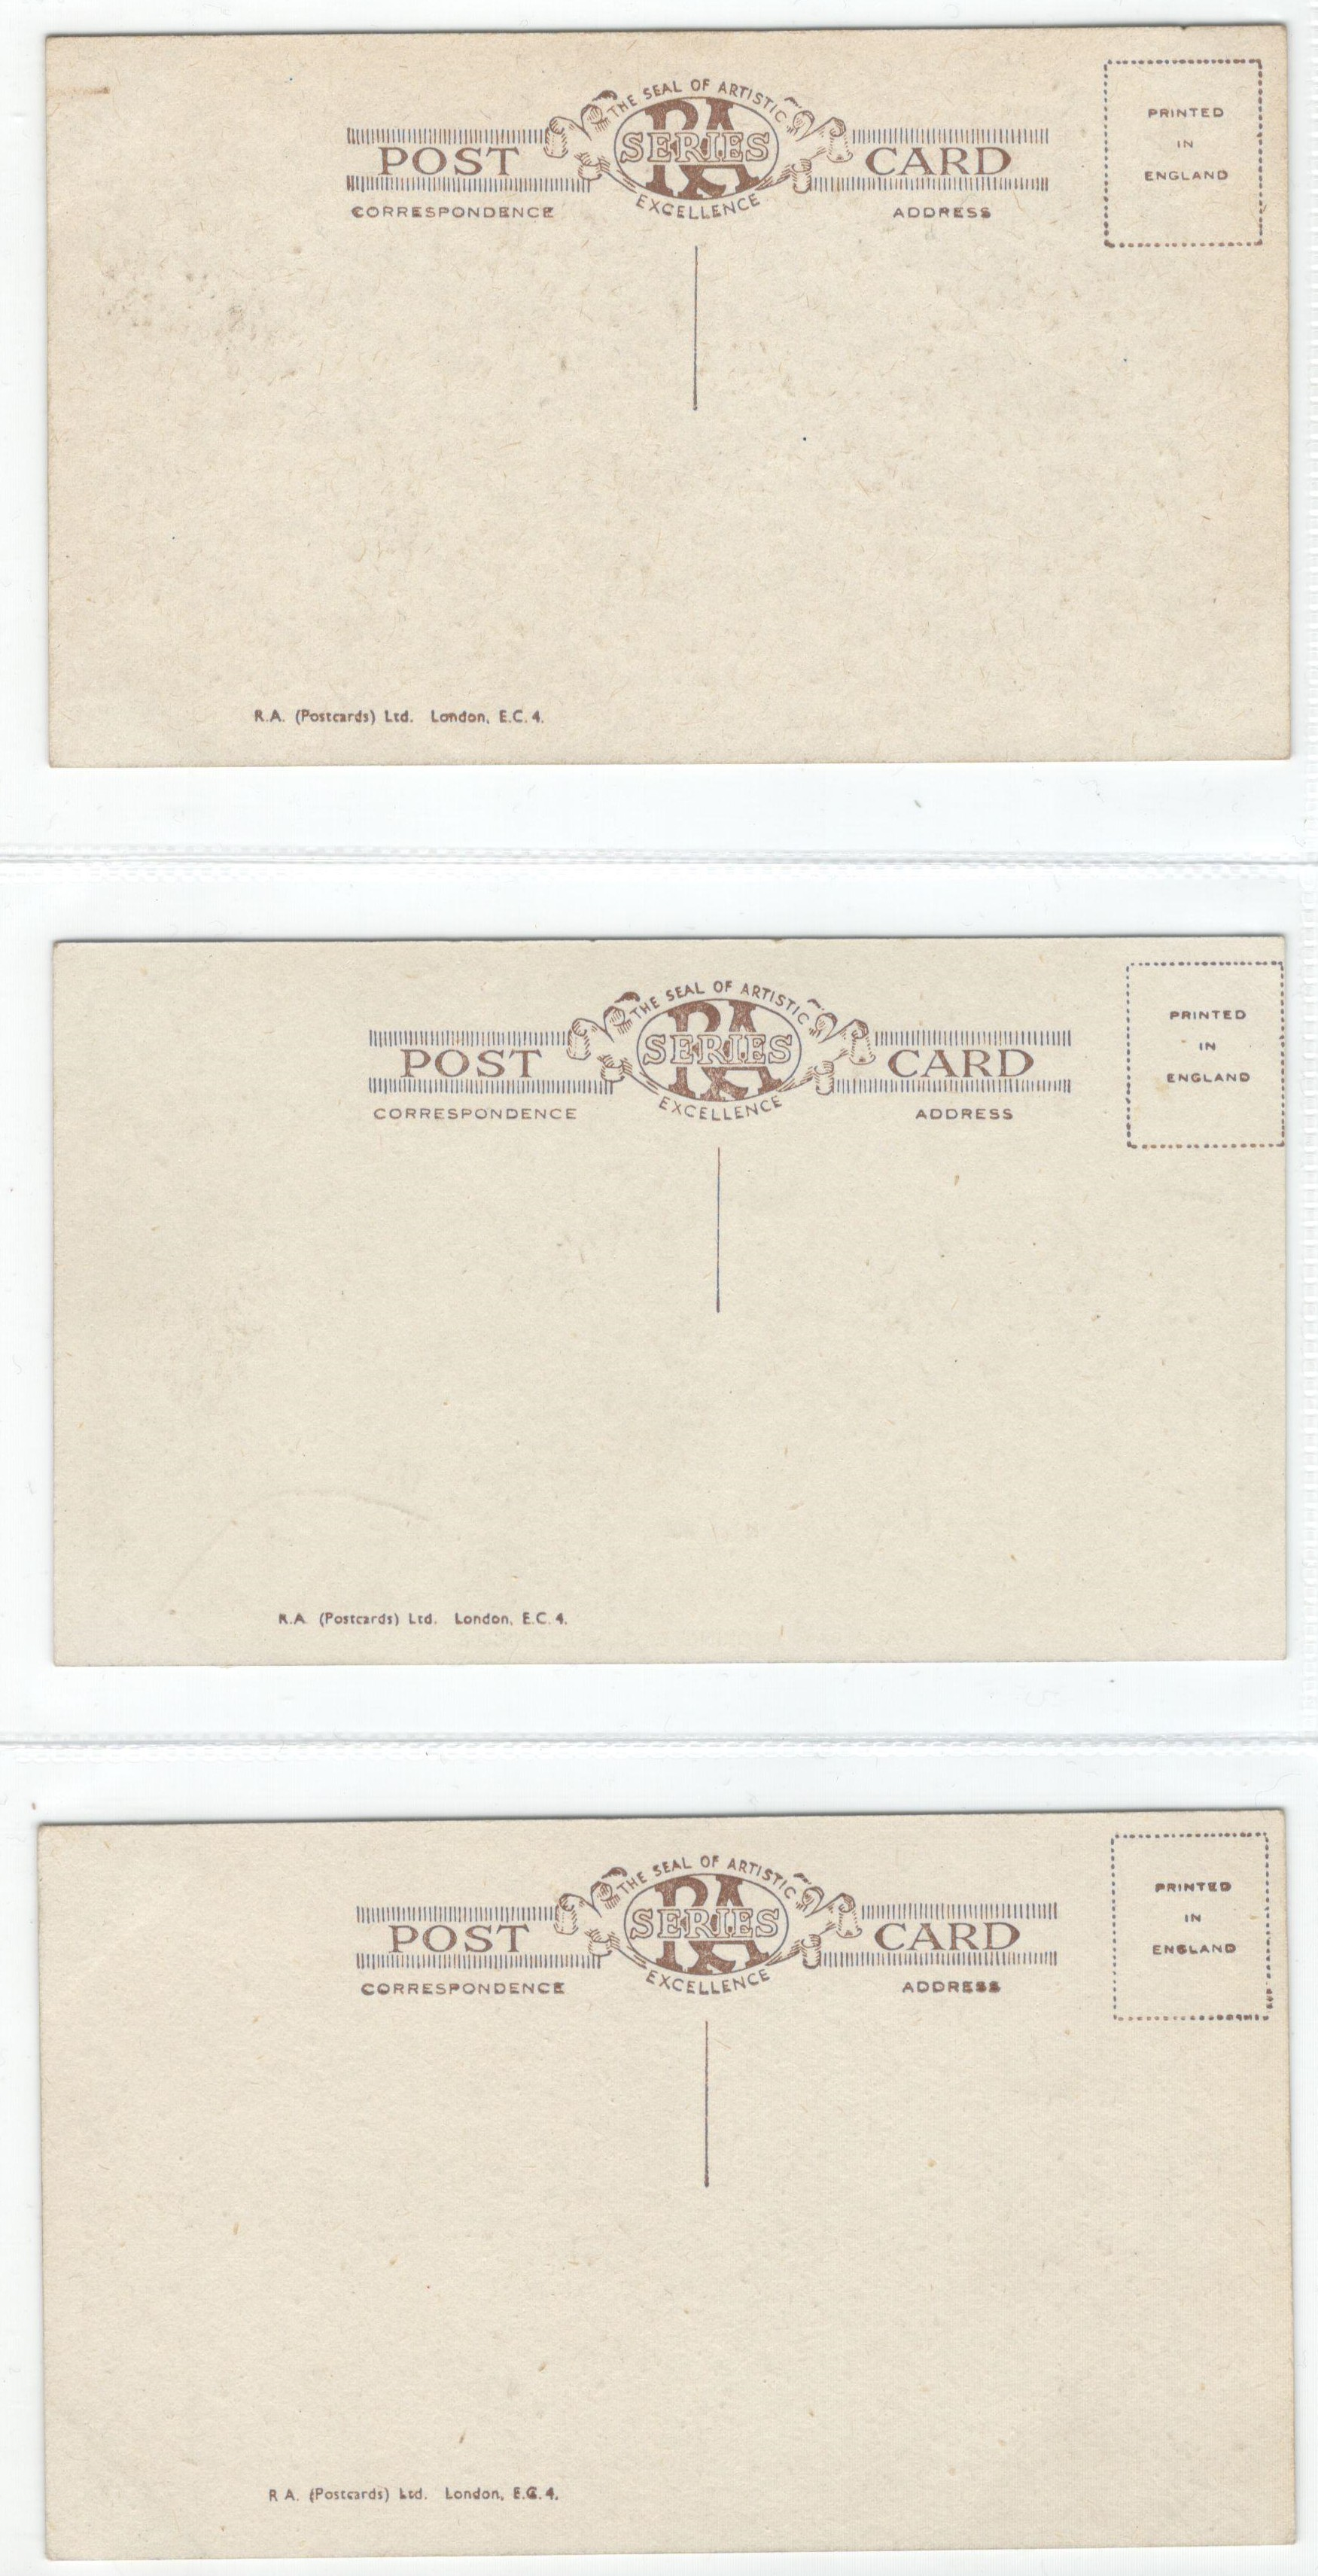 SET OF SIX VINTAGE POSTCARDS - THE SEAL OF THE ARTISTIC EXCELLENCE SEAL RA SERIES - Image 2 of 4